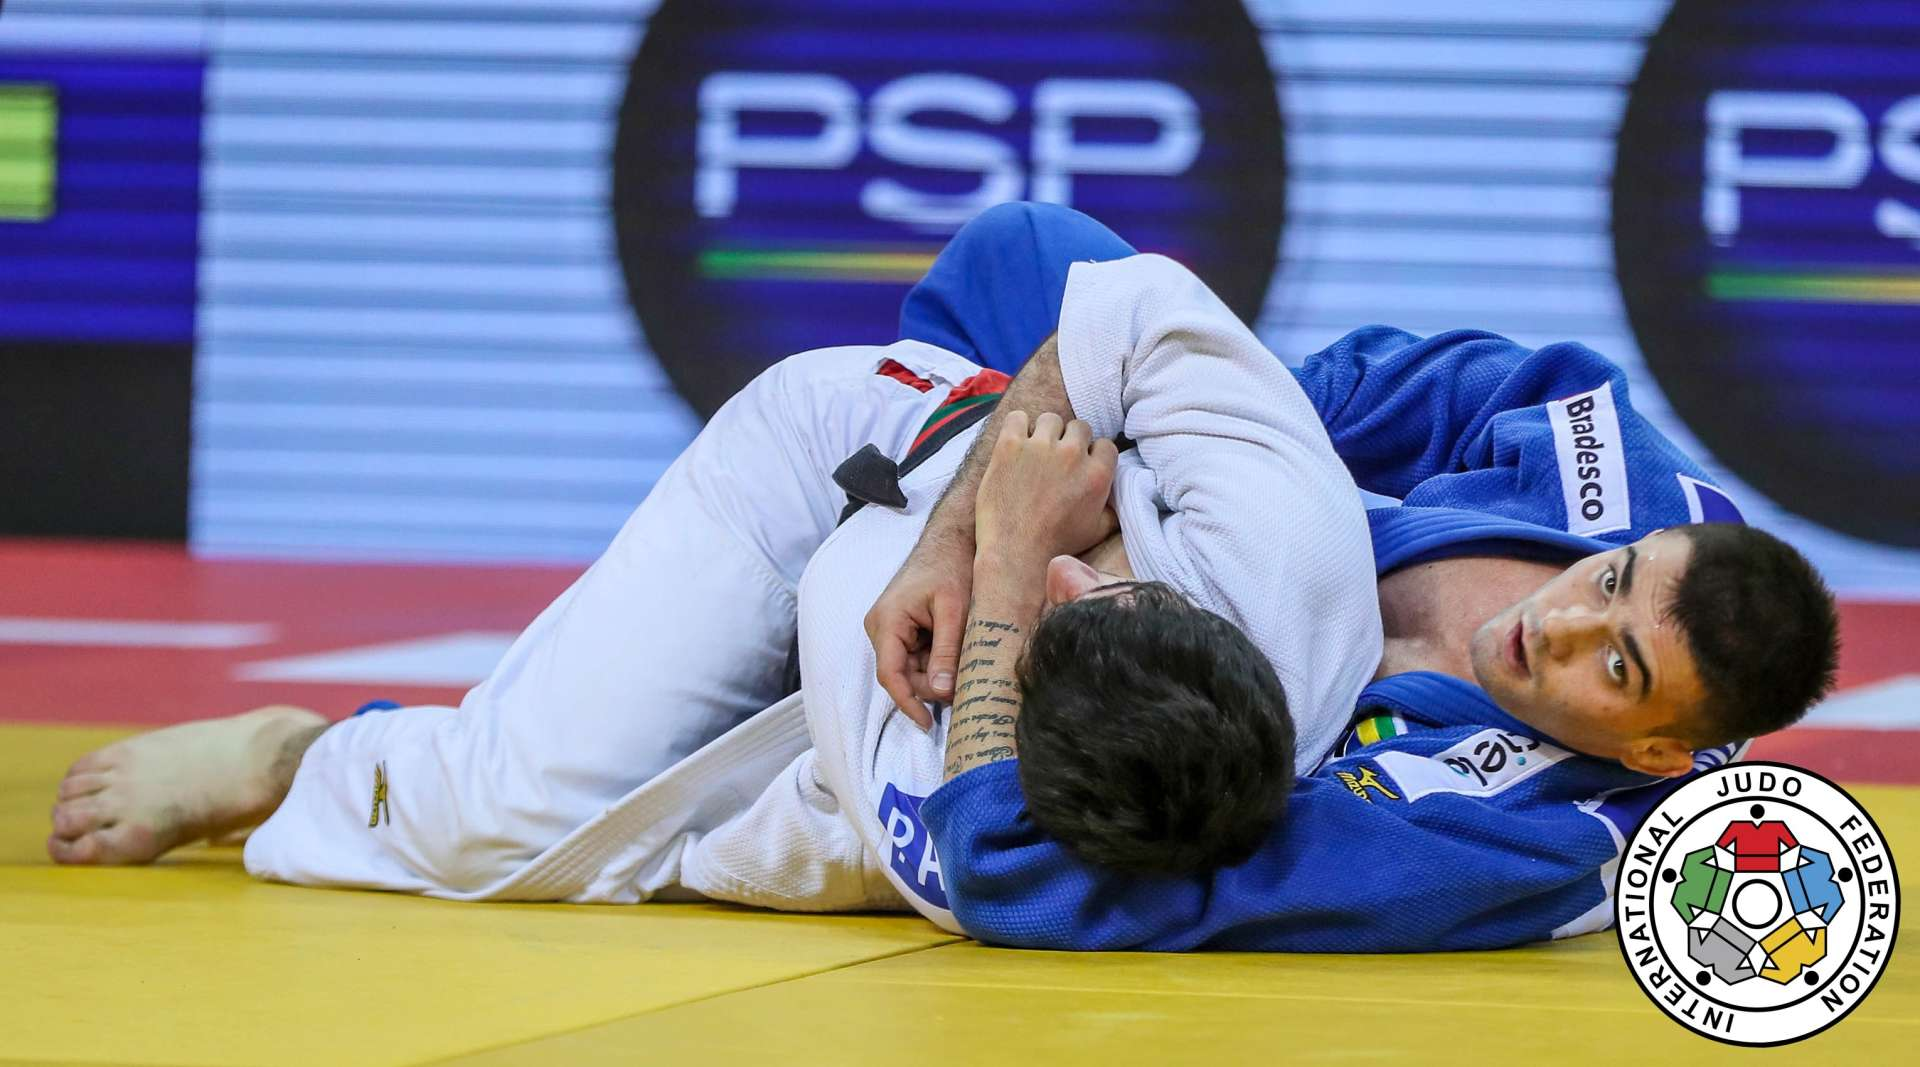 20180401_tbilisi_ijf_final_90_macedo_rafael_winner